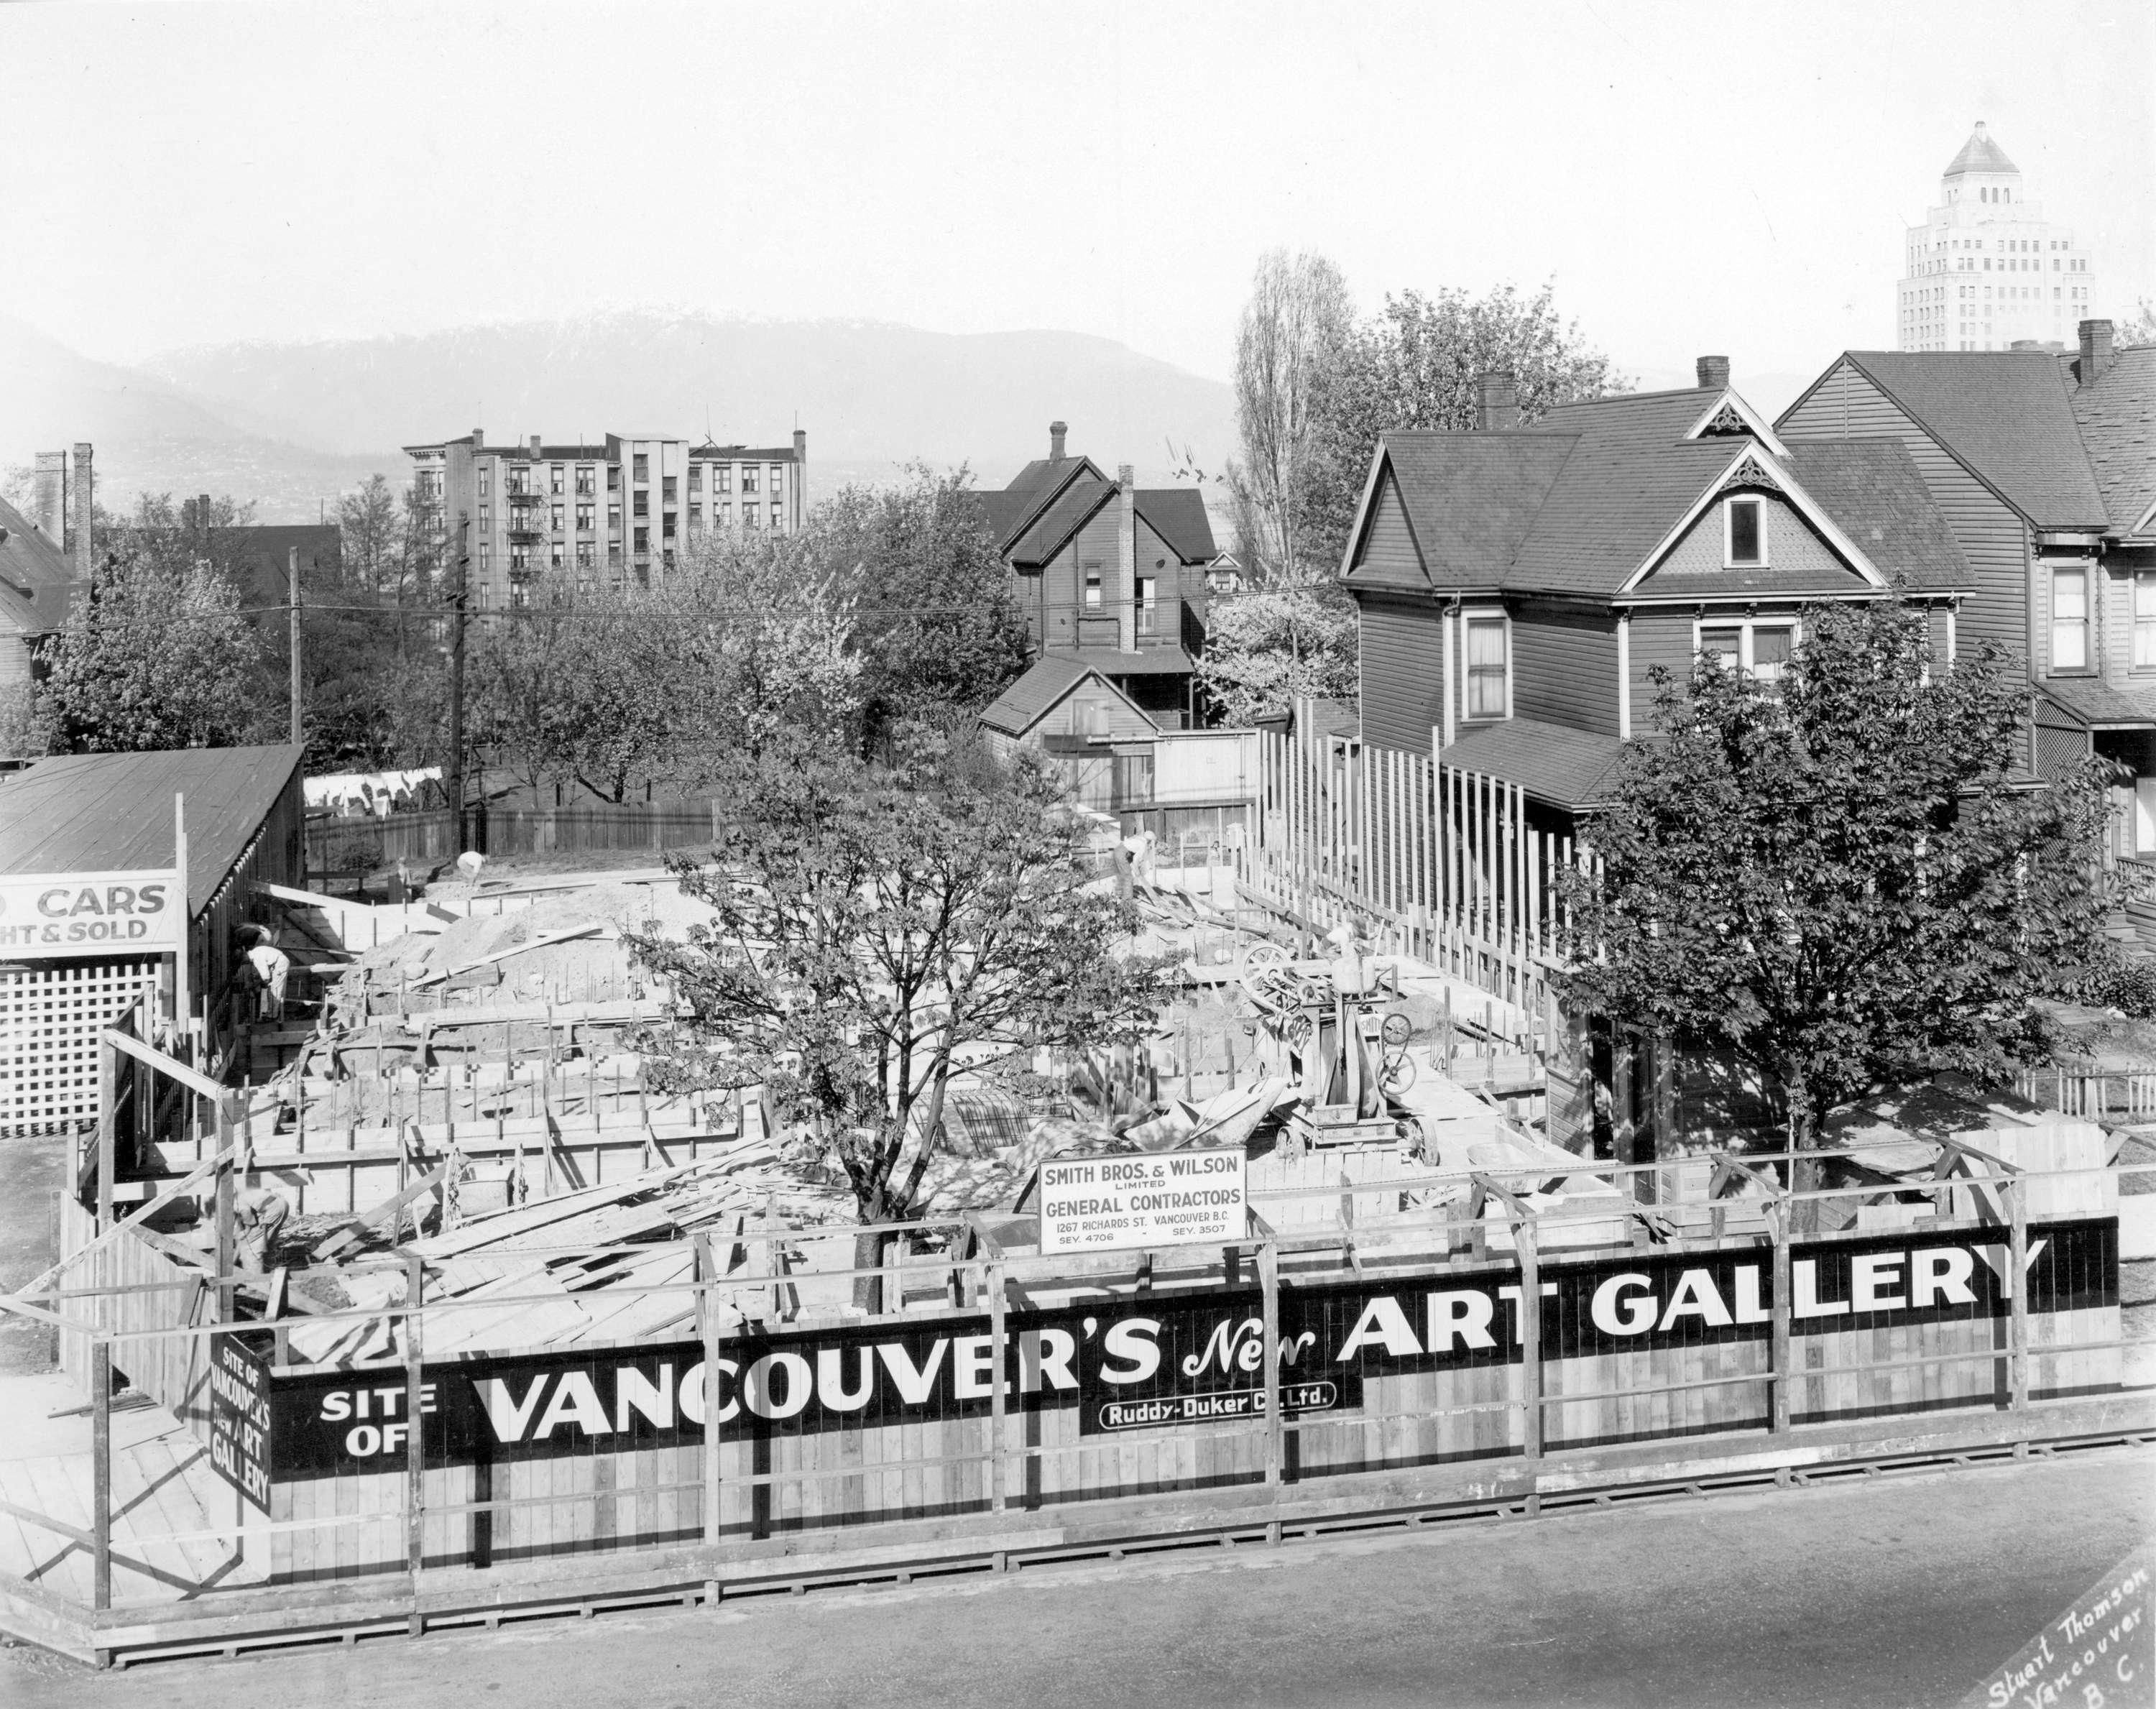 Vancouver Art Gallery under construction, 1931.  1145 W. Georgia Street. CIty of Vancouver Archives AM54-S4-: Bu P401.1